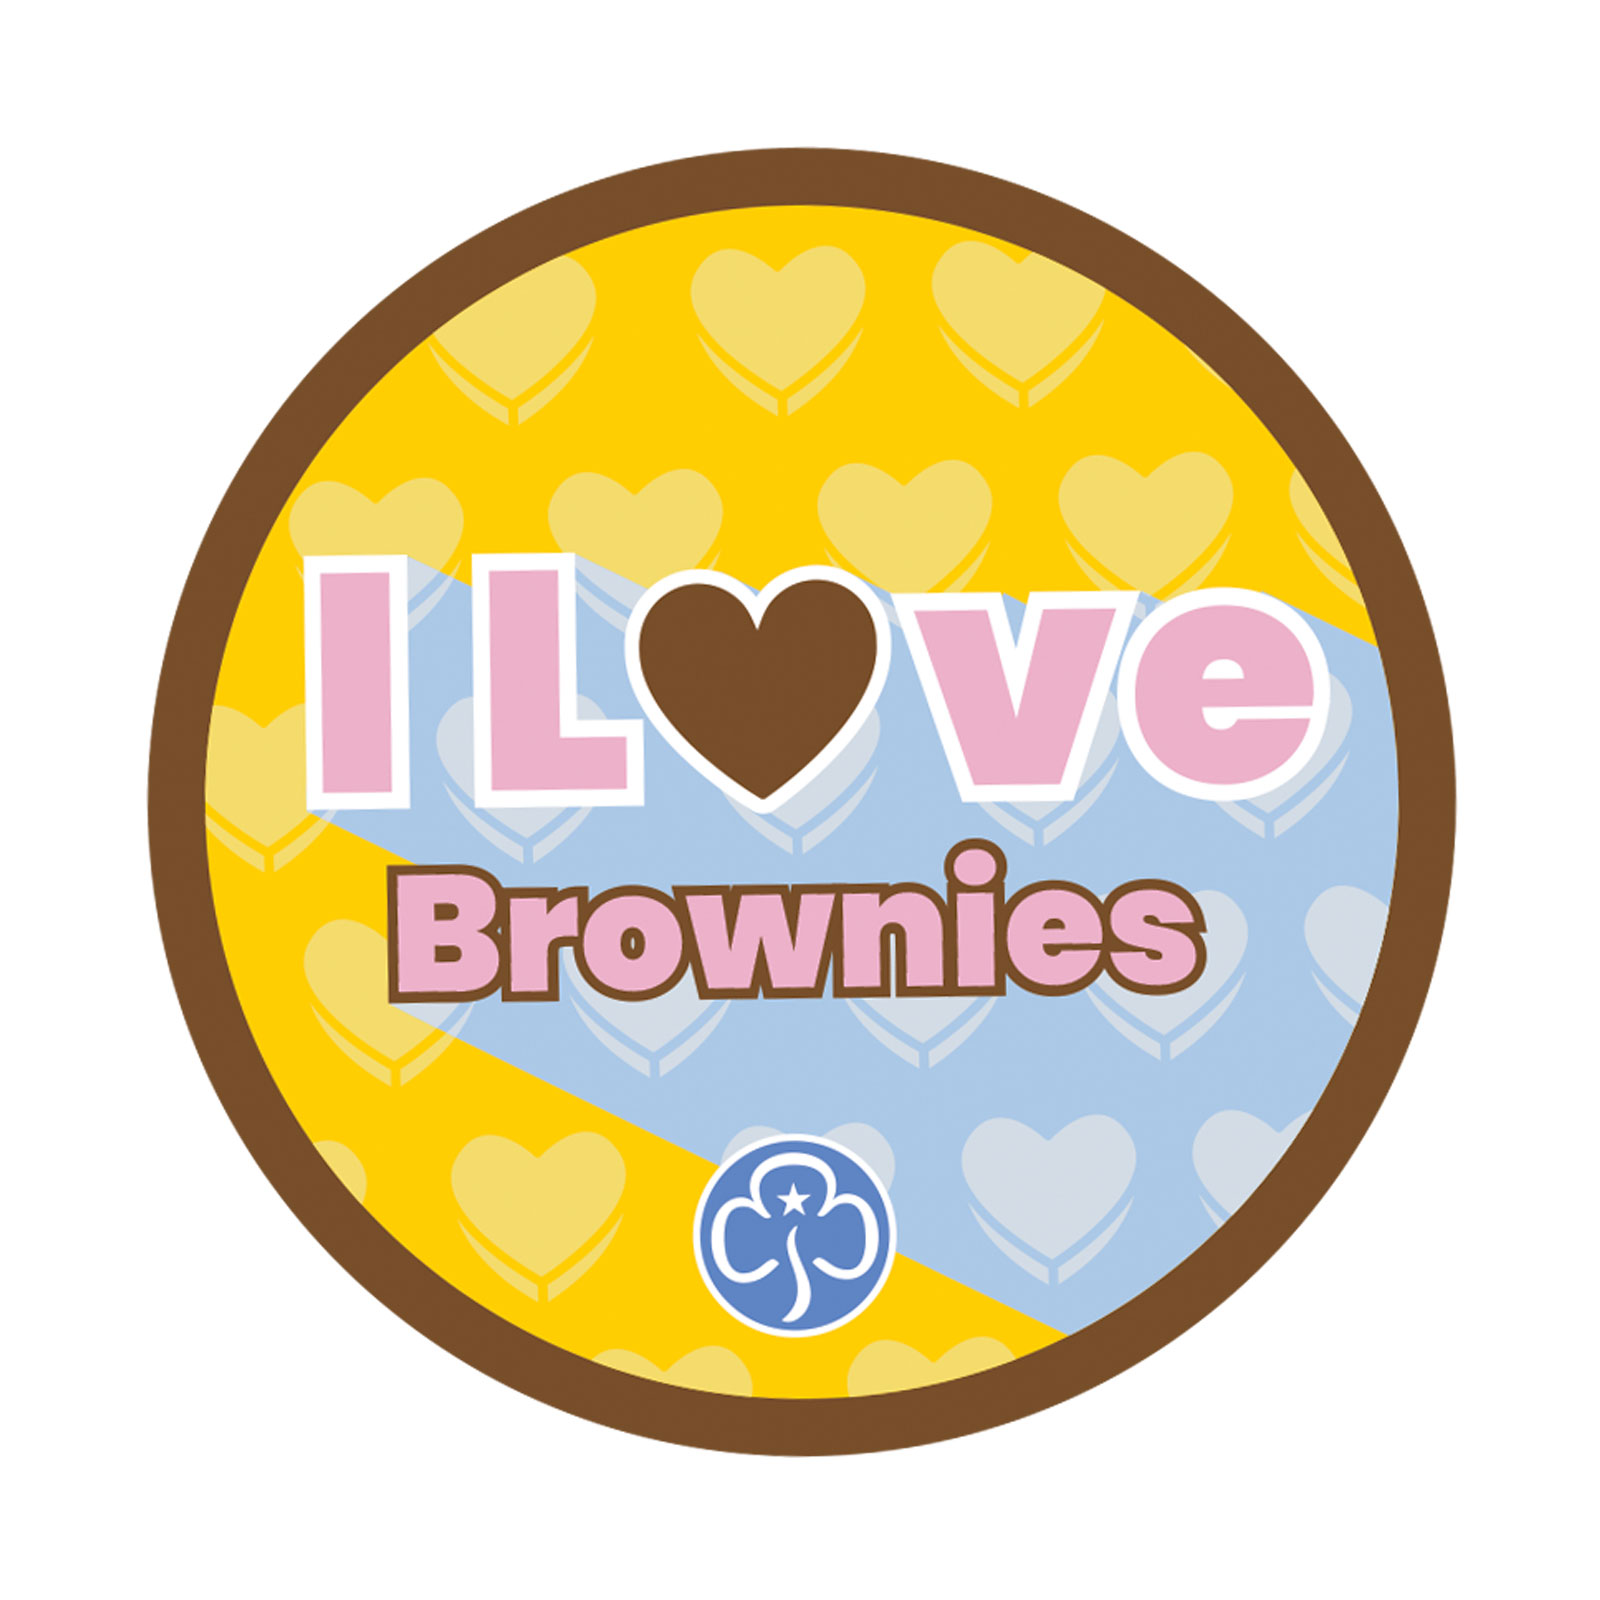 image relating to Brownie Activity Pack